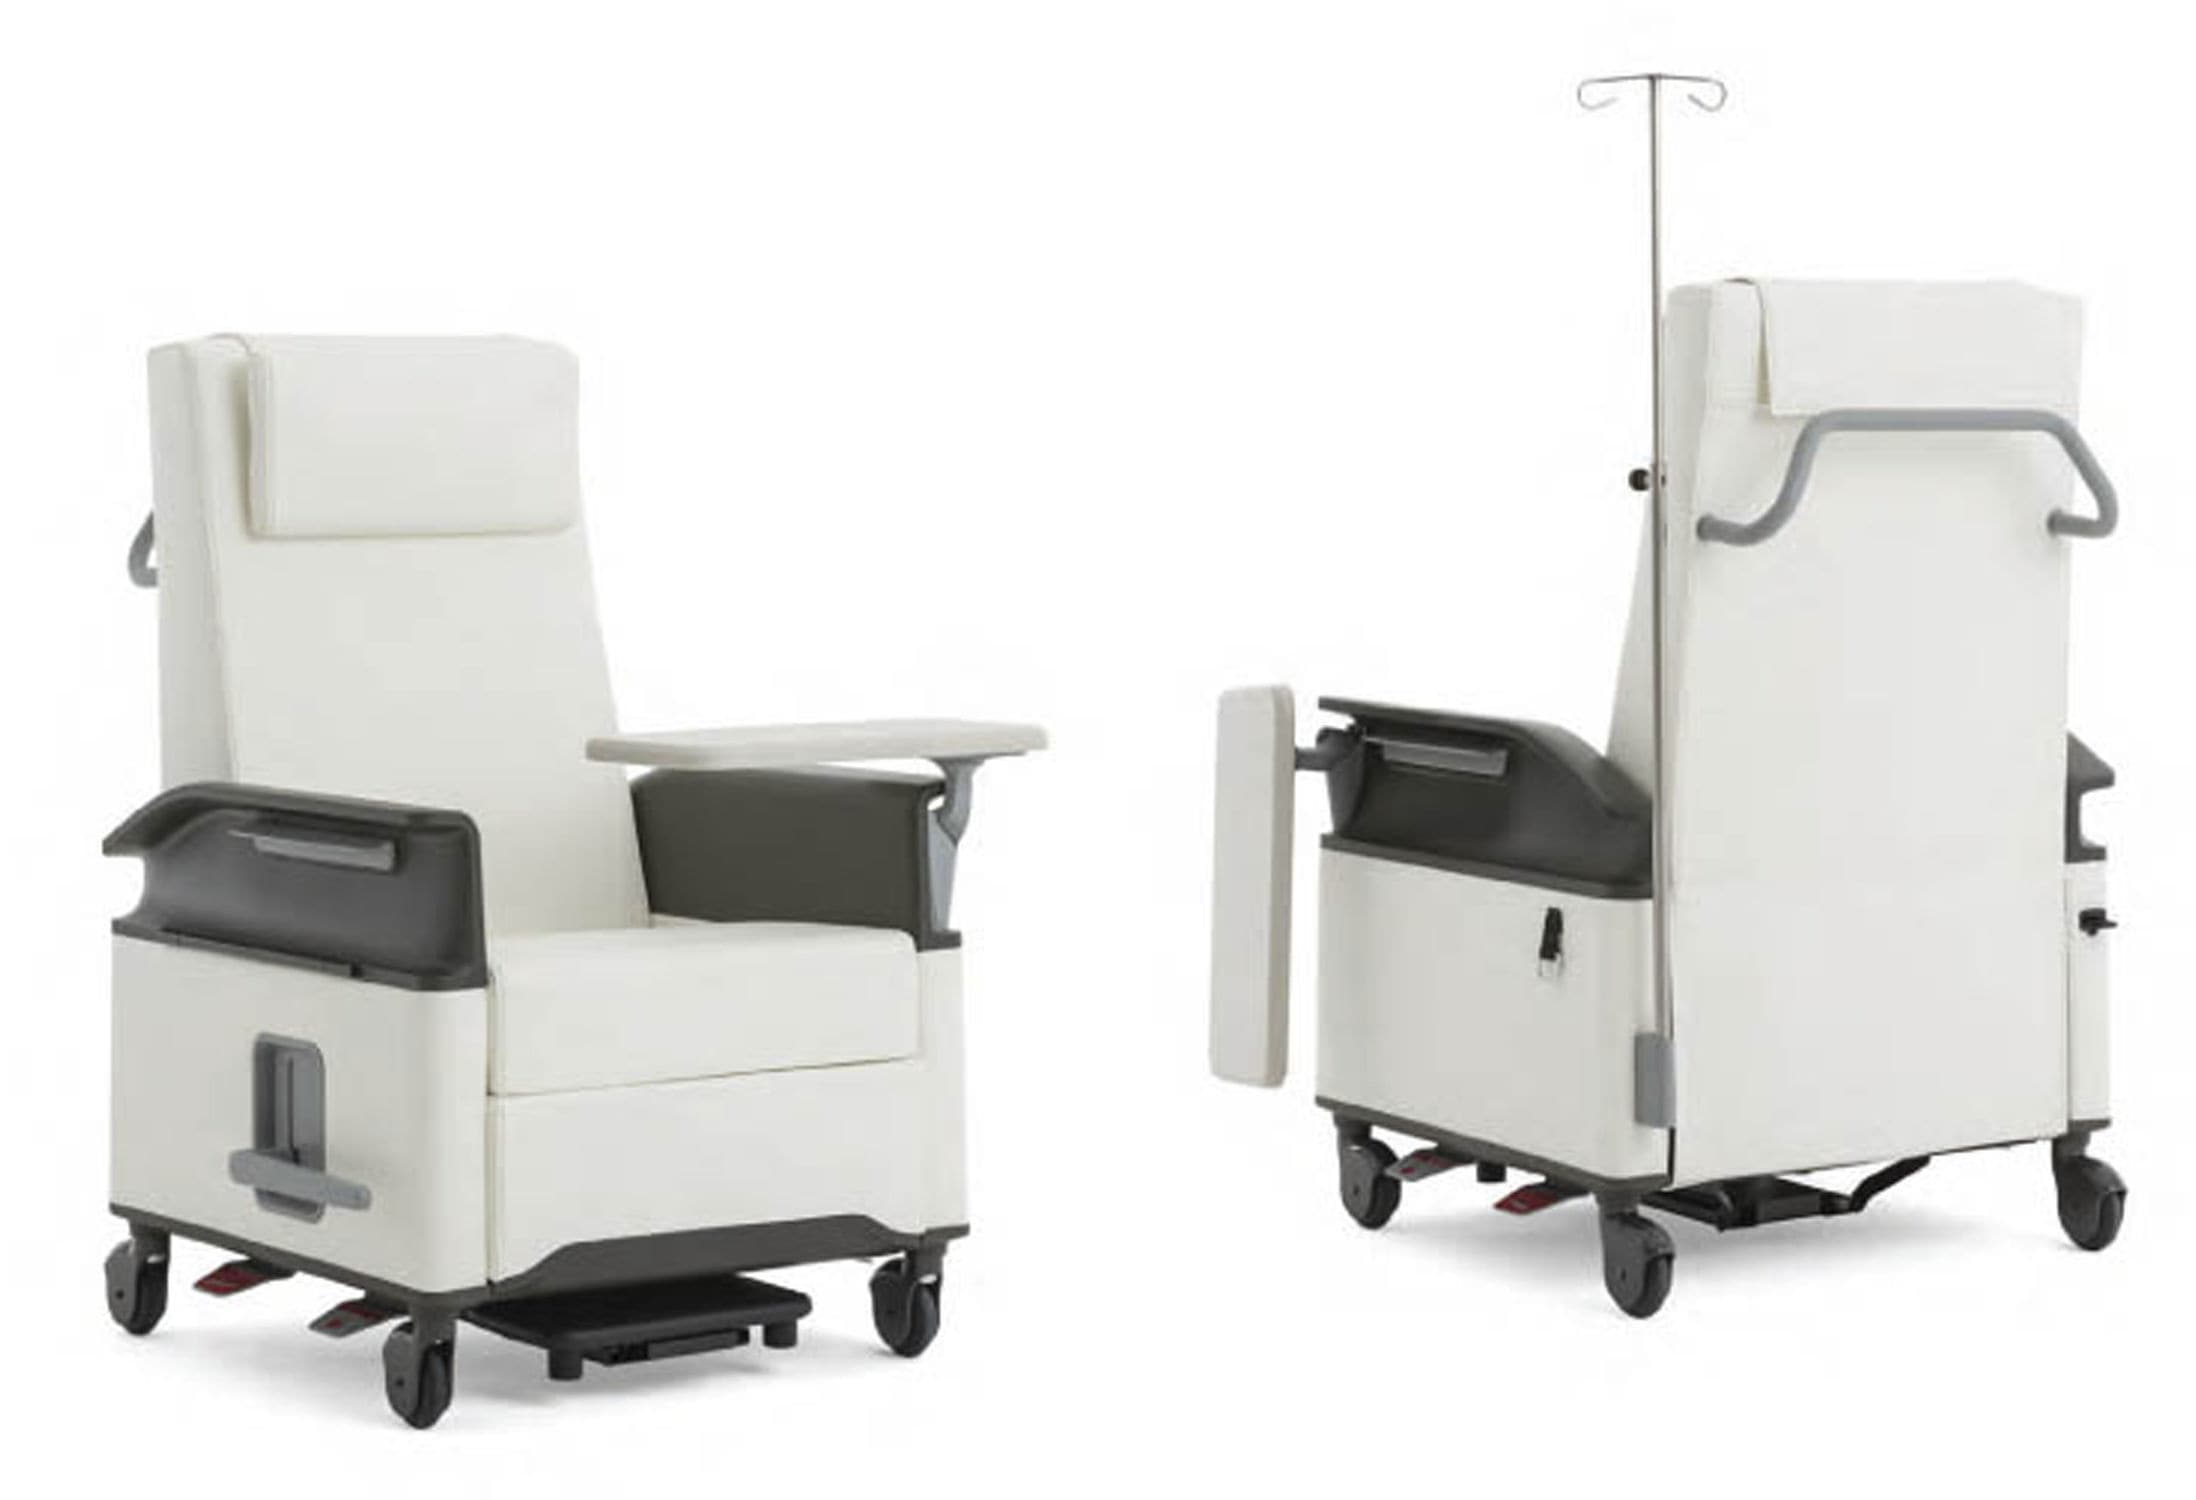 will chair photos best medicare cover of pictures recliner full awesome chairlift chairs new medical for costco mechanical pay adelaide does elderly size may sign a to collection how hospital up lift unique glasses